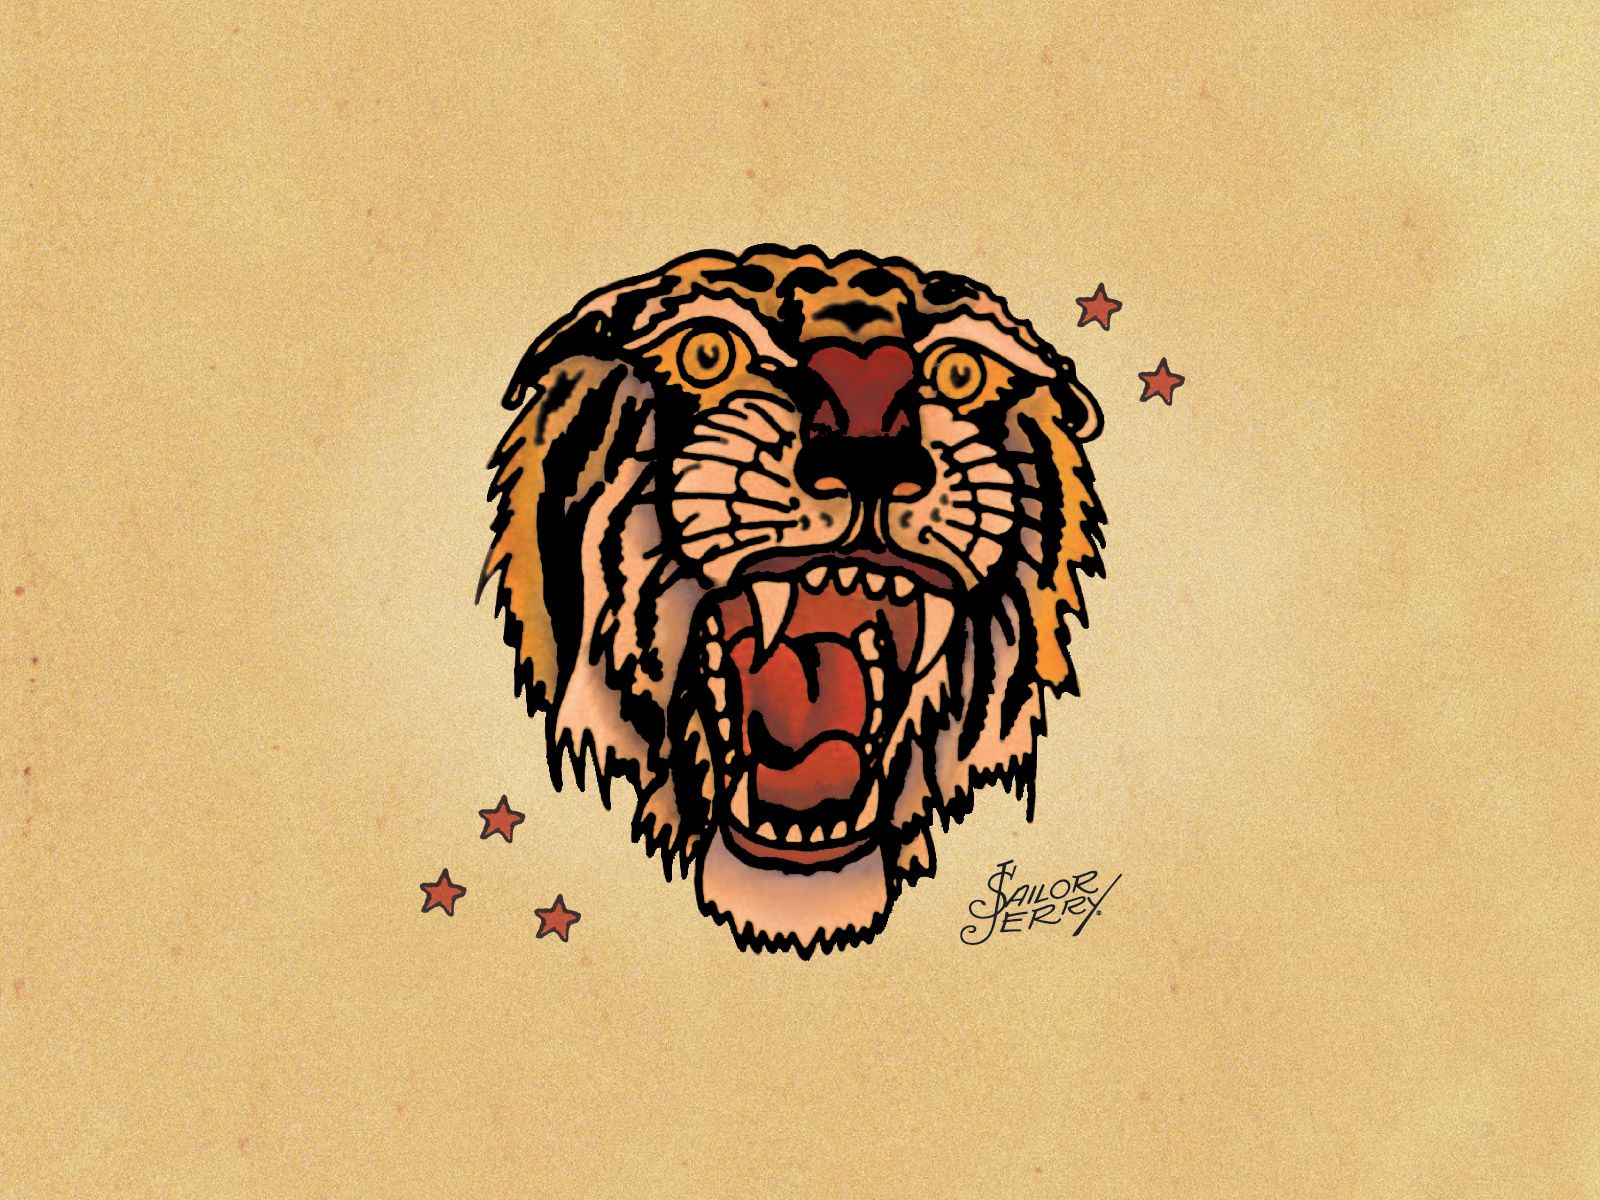 Sailor Jerry Wallpapers - WallpaperPulse